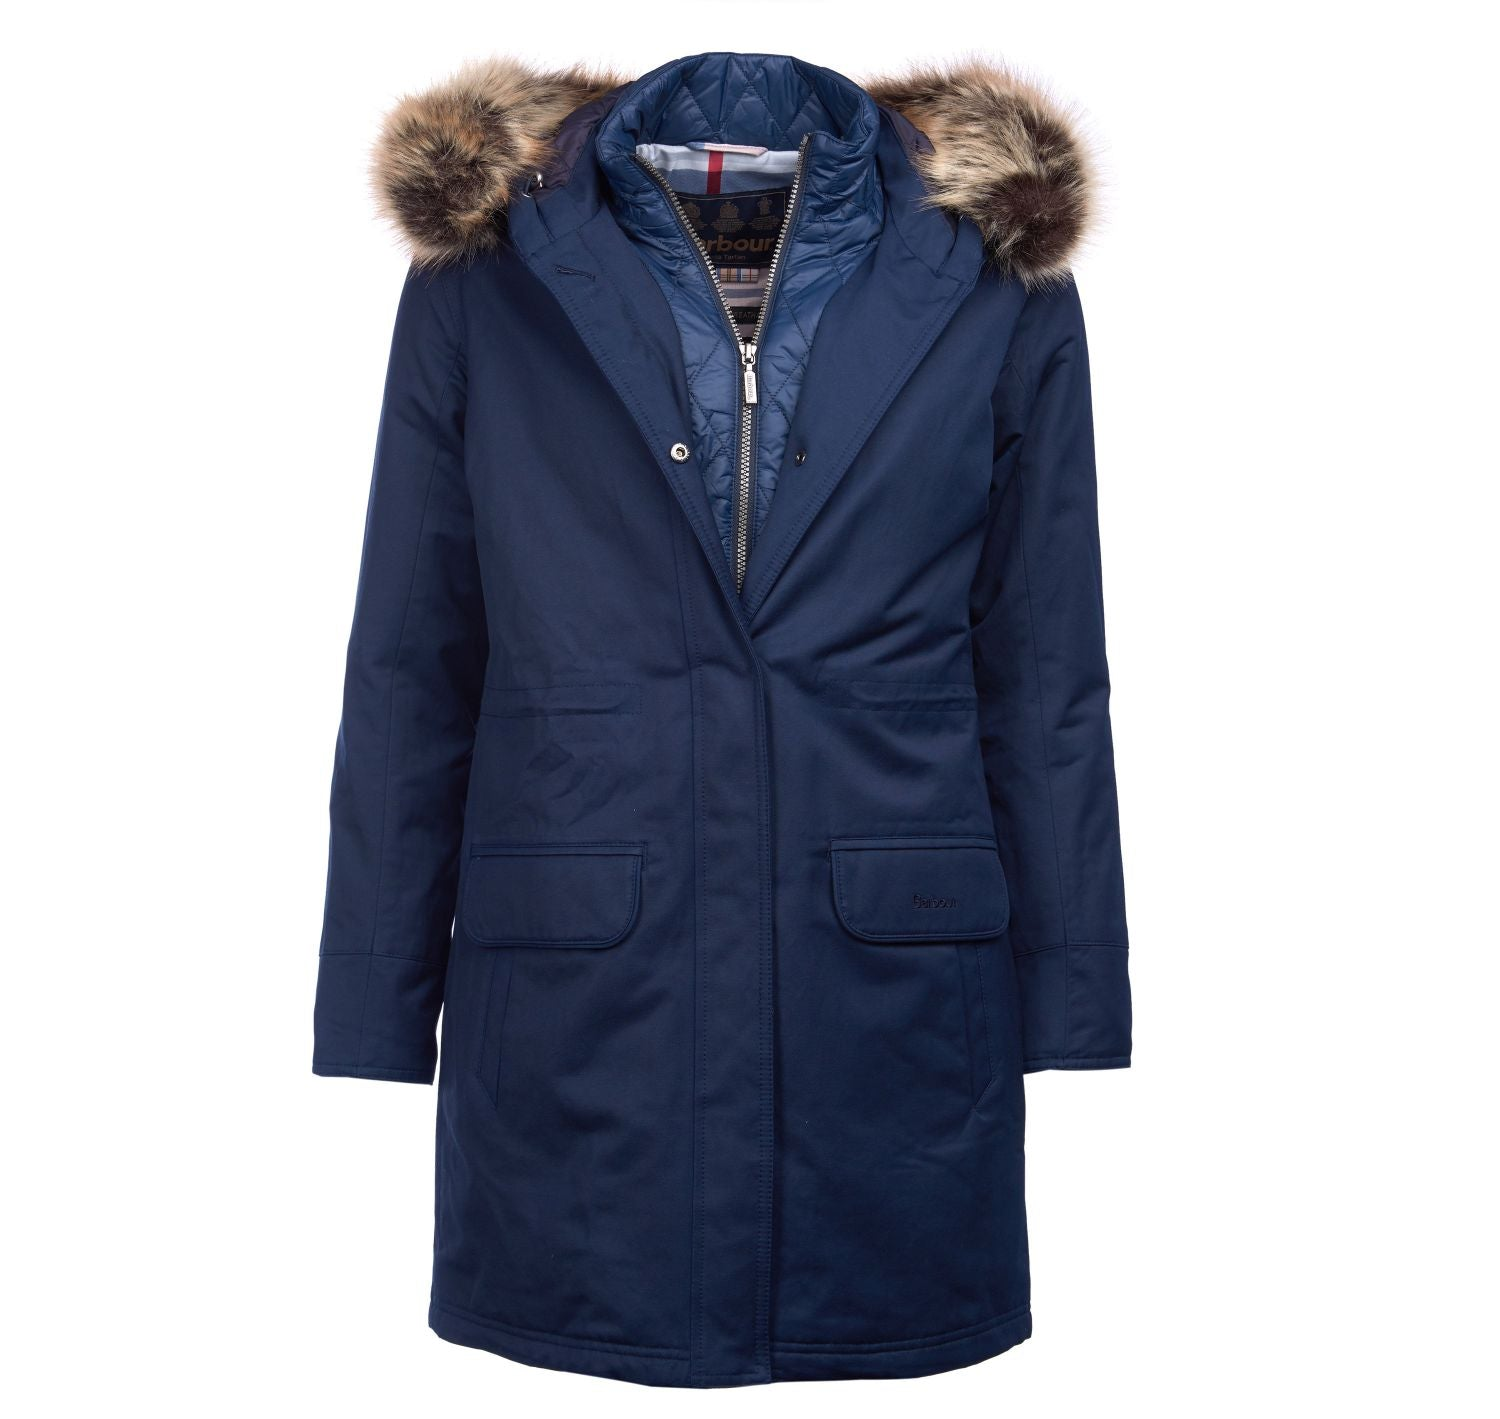 Barbour Argyll Waterproof Breathable Parka Jacket - North Shore Saddlery